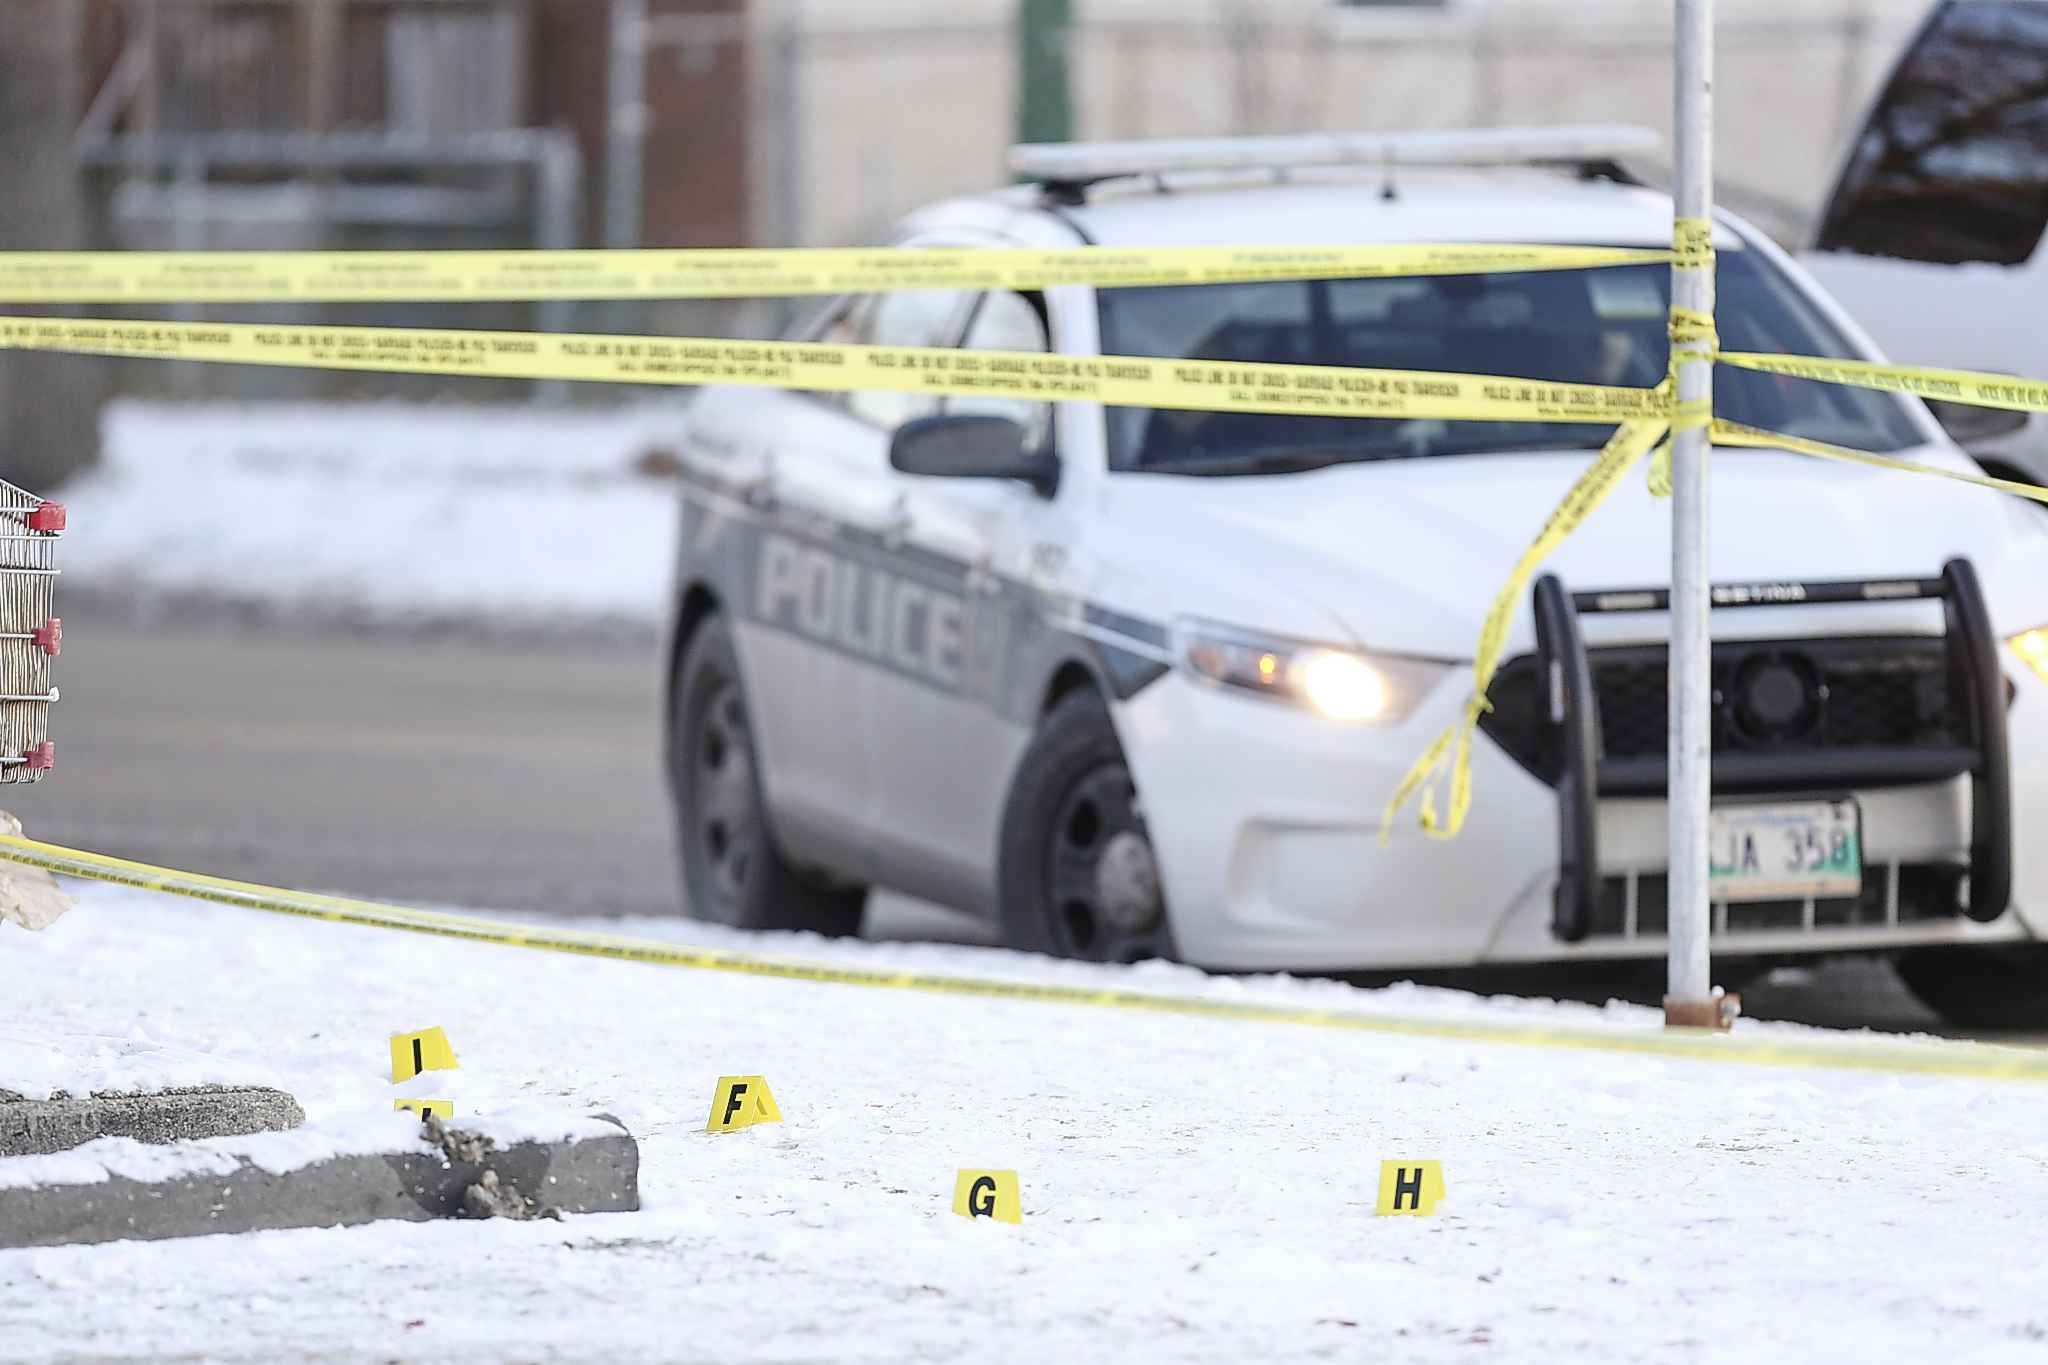 Winnipeg police are still investigating the scene at the 7-Eleven at Ellice Avenue and Arlington Street. (Mike Deal / Winnipeg Free Press)